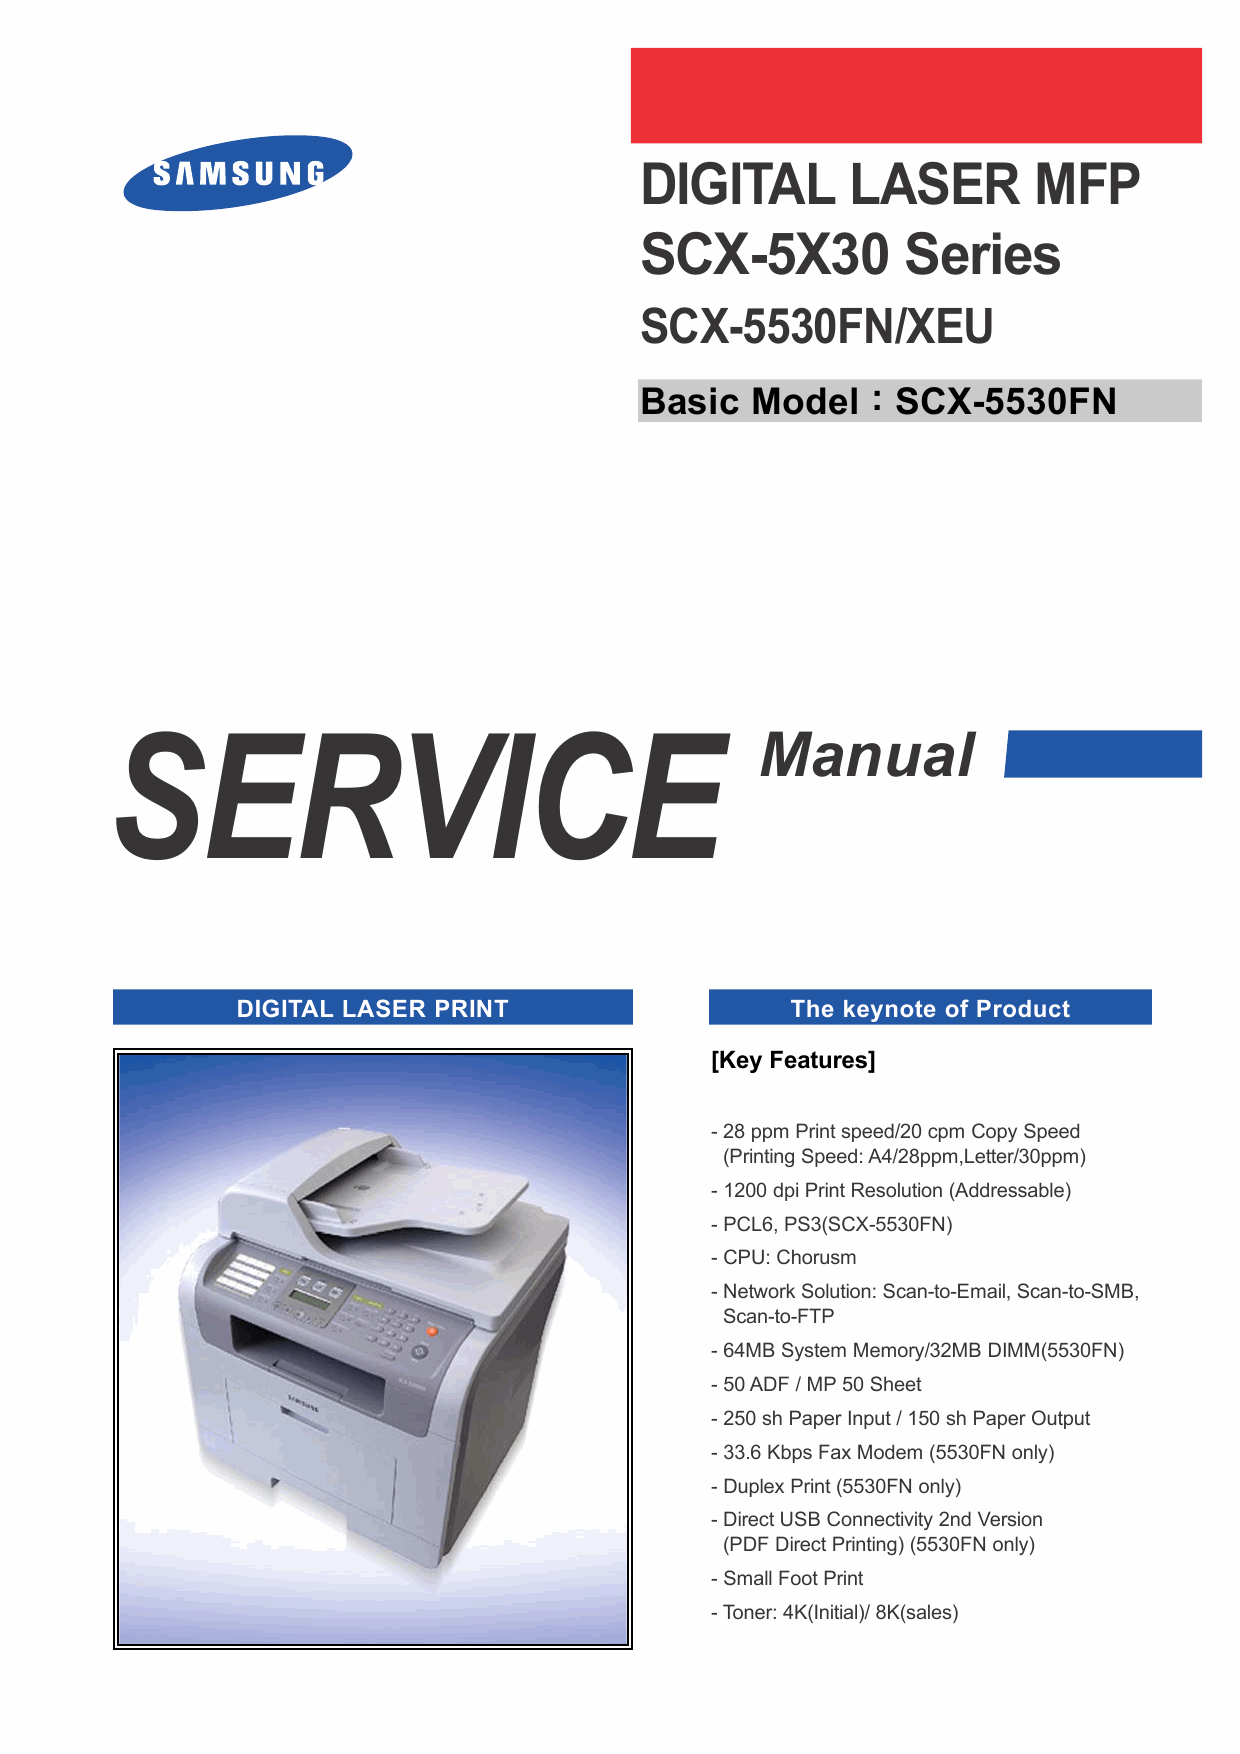 Samsung Digital-Laser-MFP SCX-5530FN Service Manual-1